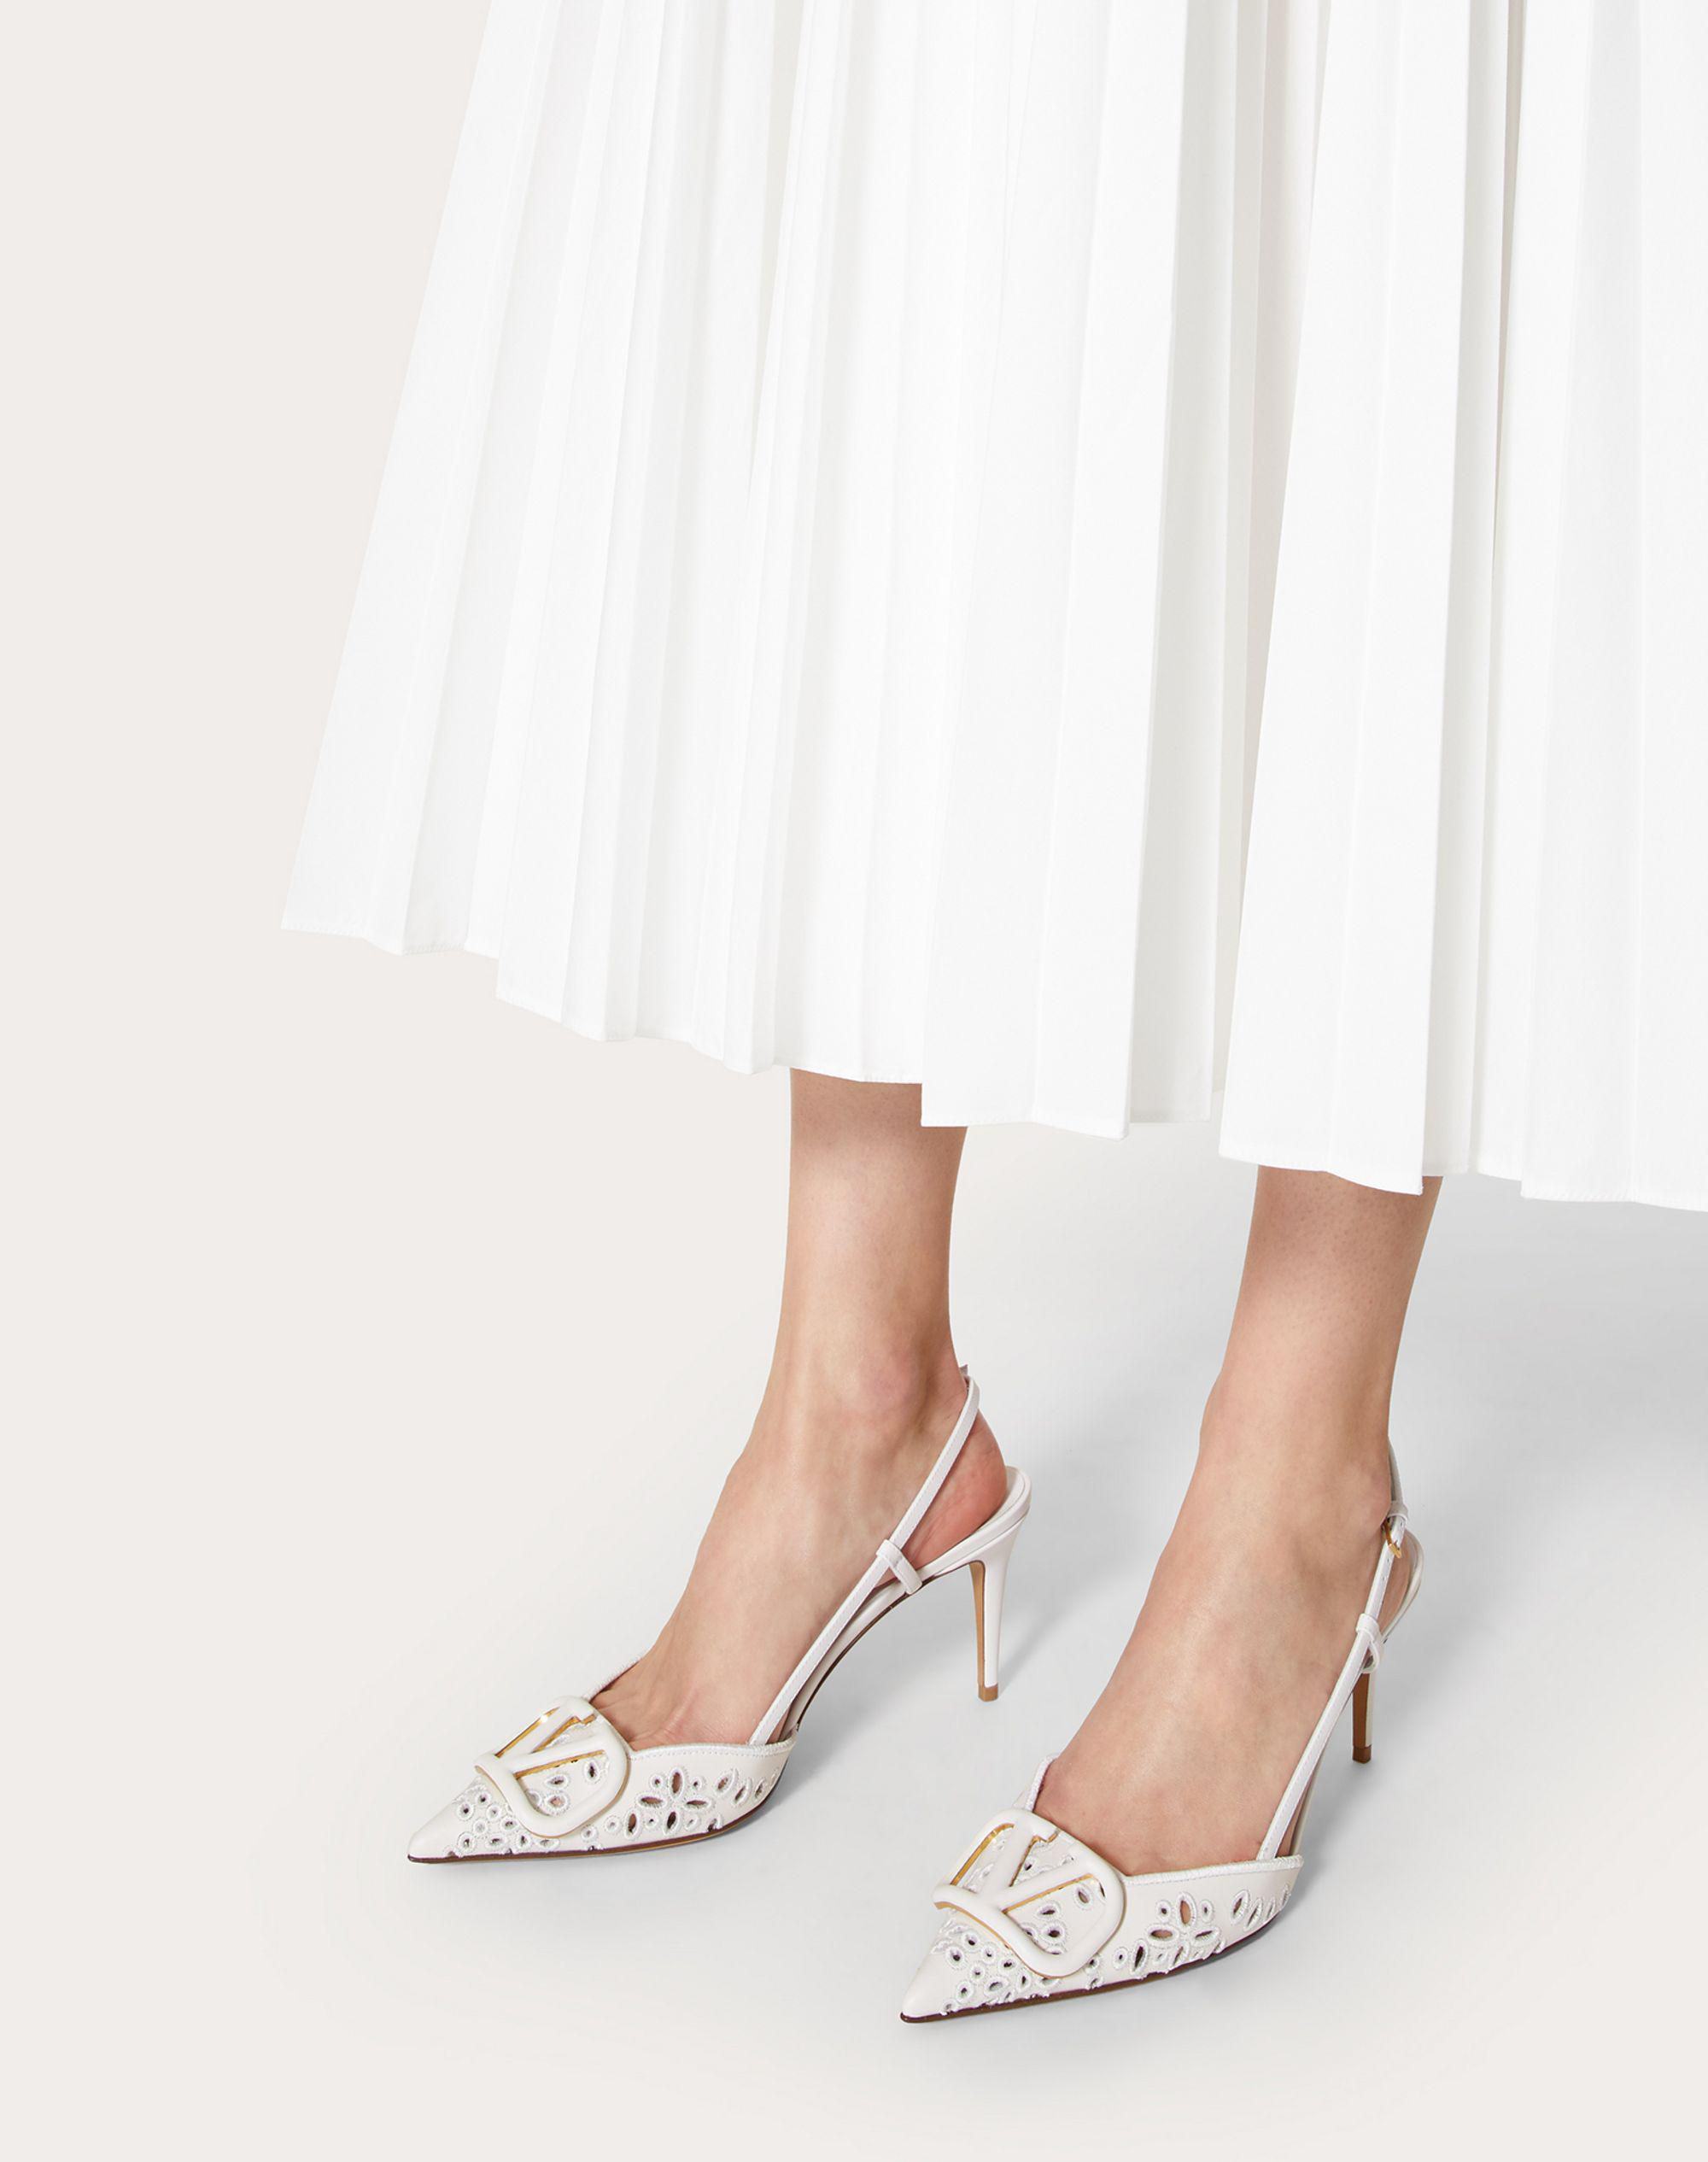 VLOGO SIGNATURE CALFSKIN SLINGBACK PUMP WITH SAN GALLO EMBROIDERY 80 MM 5